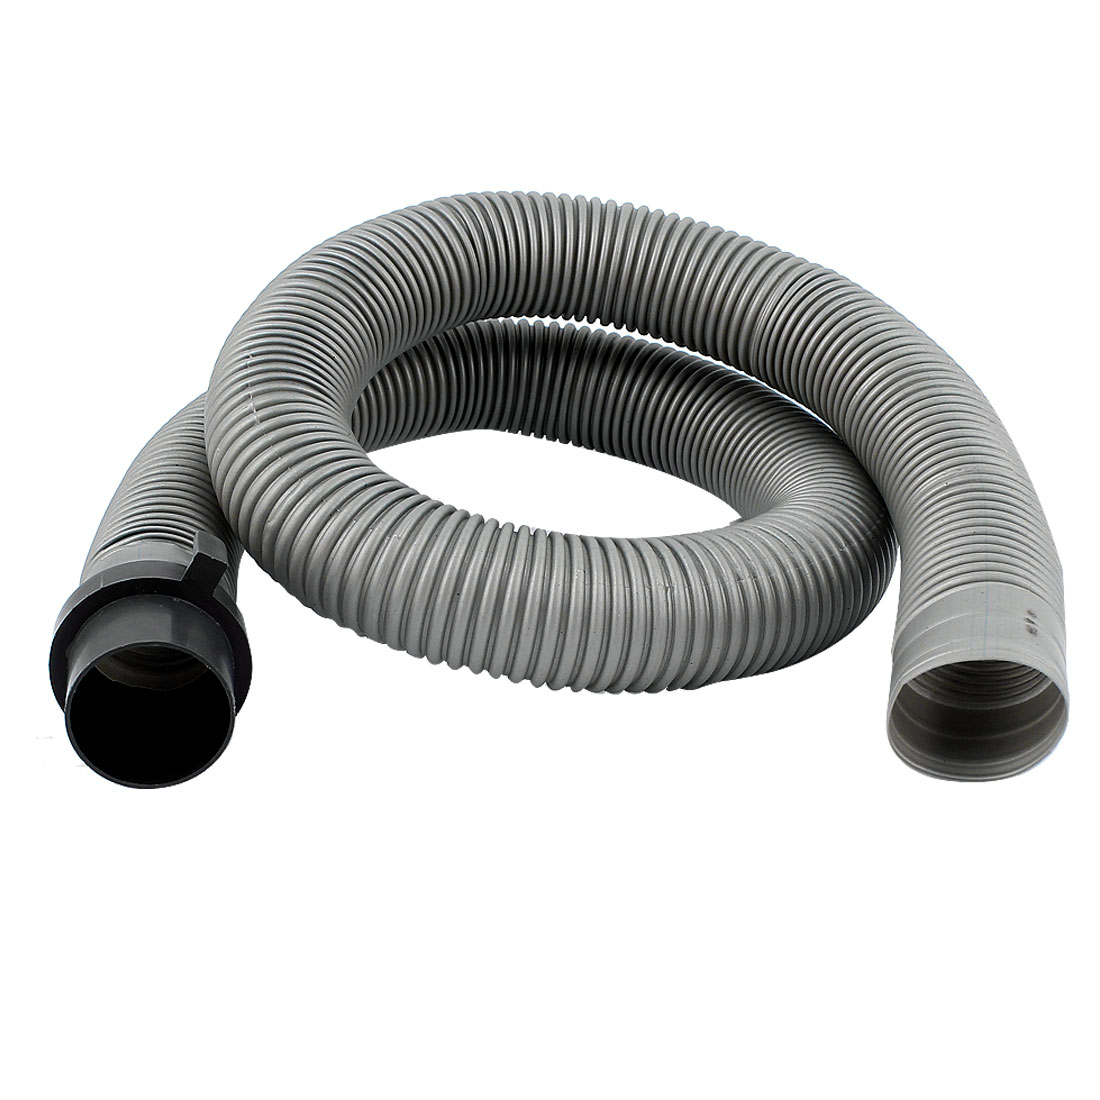 Washer Washing Machine Flexible Outlet Drain Hose Pipe 1M Length Gray